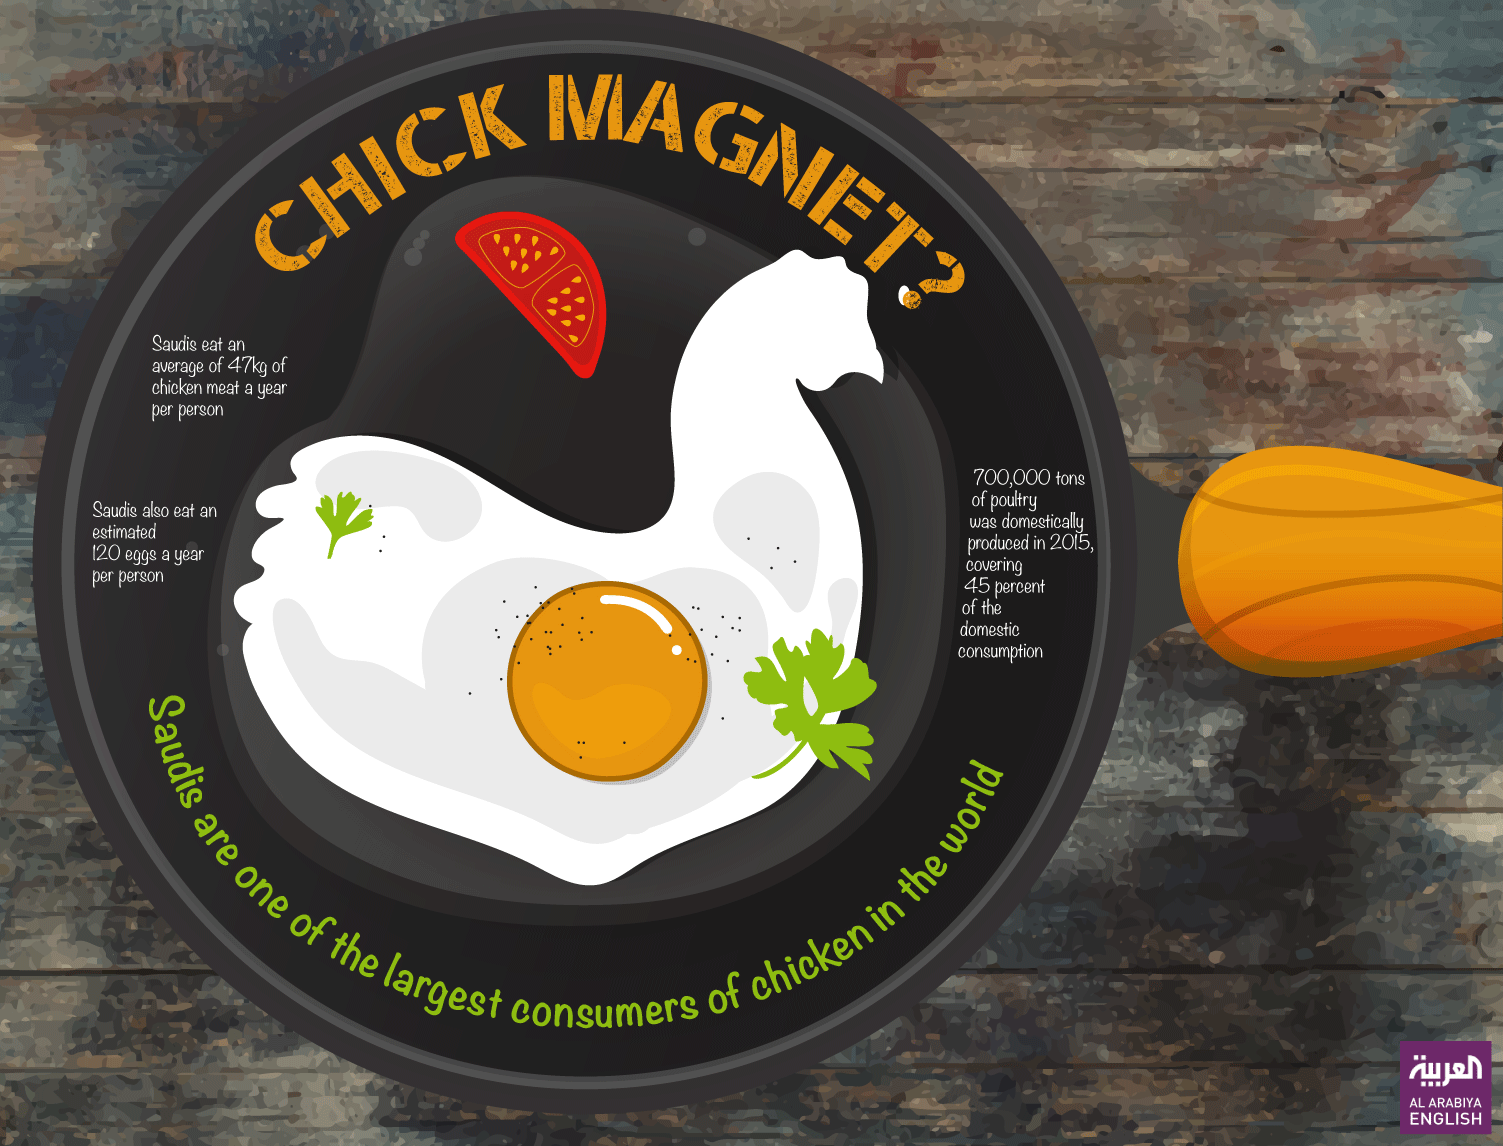 Infographic: Chick magnet?